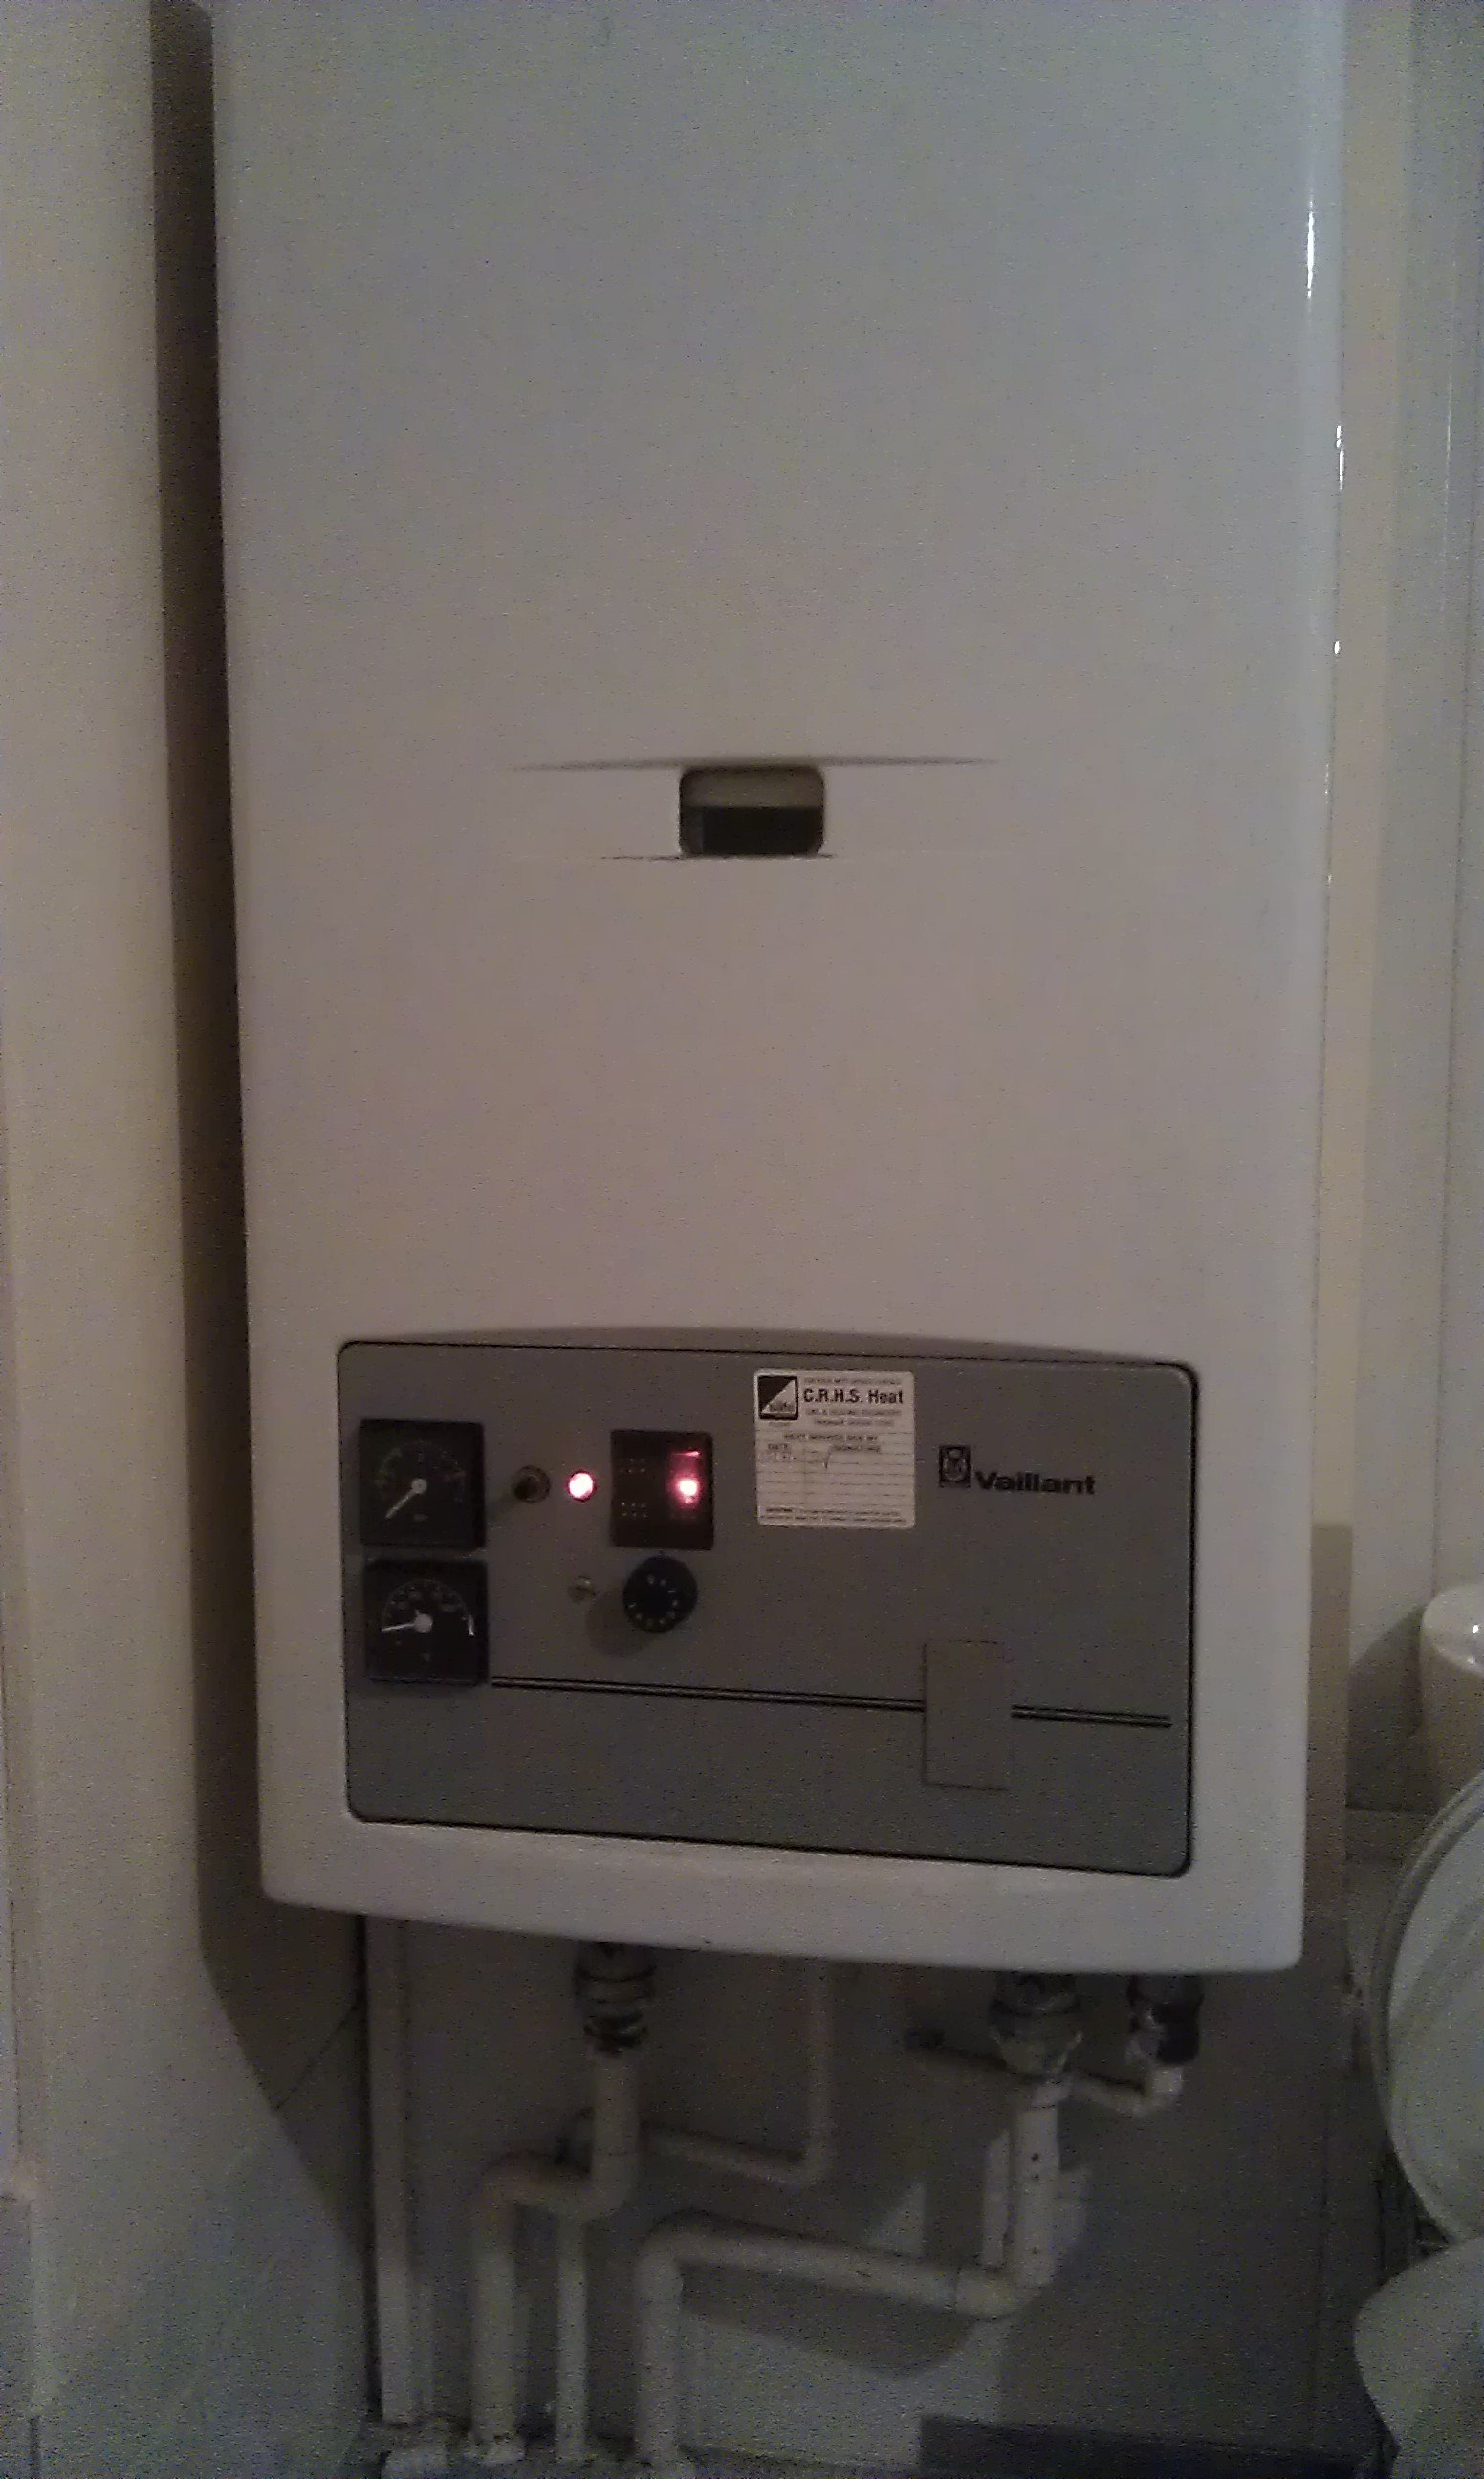 My Boiler Looks Like An Old Model Vaillant But I Can T